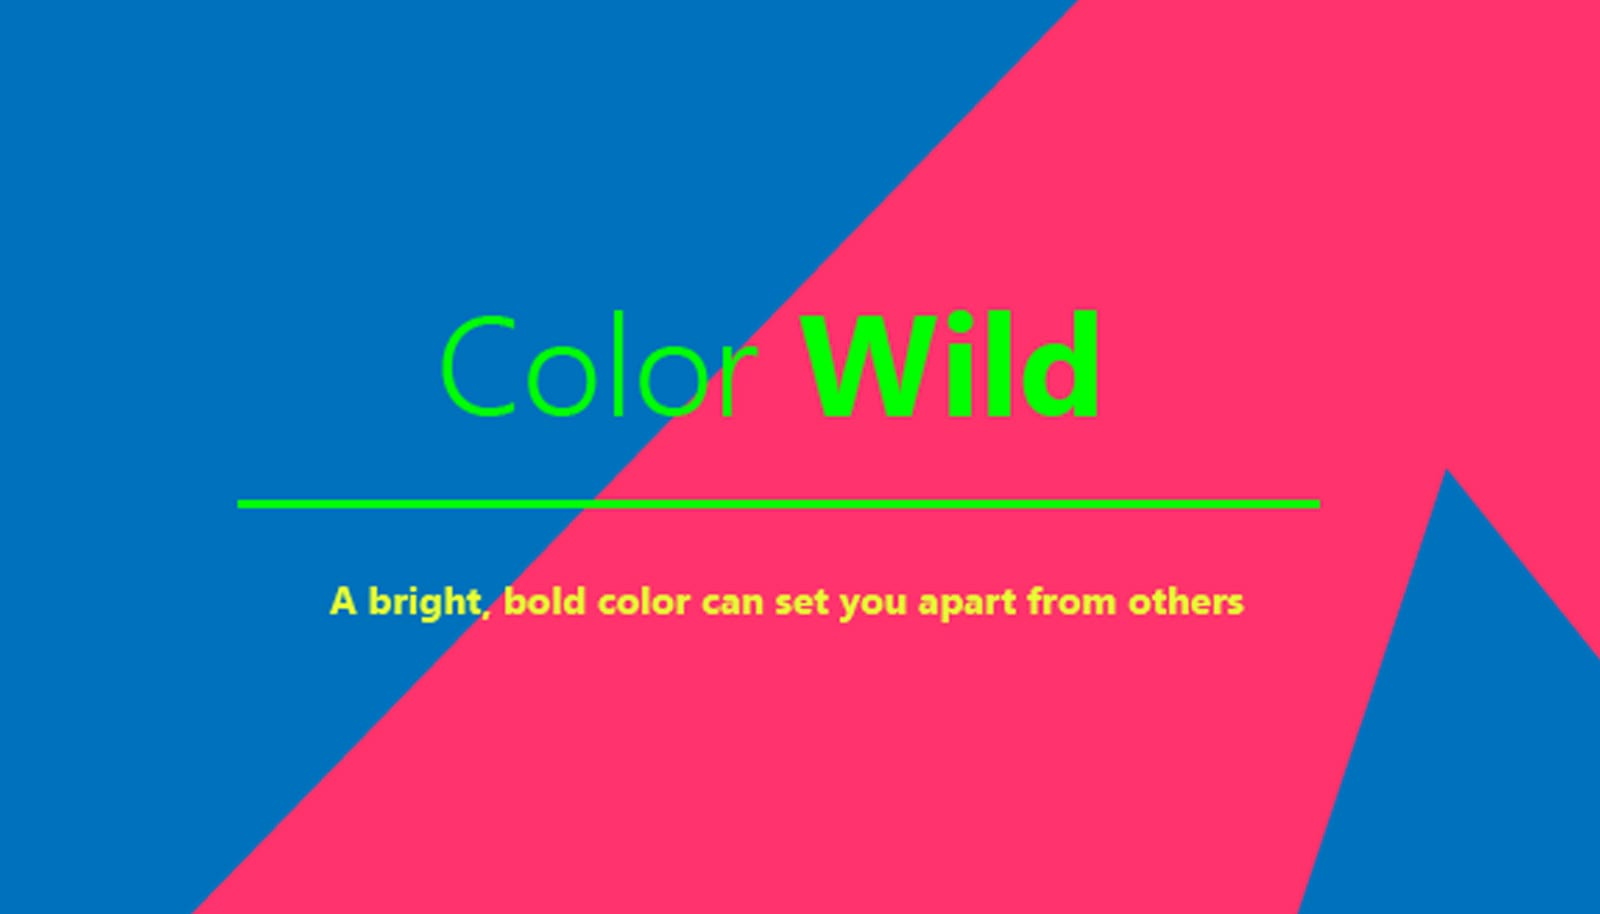 illustration of words color wild